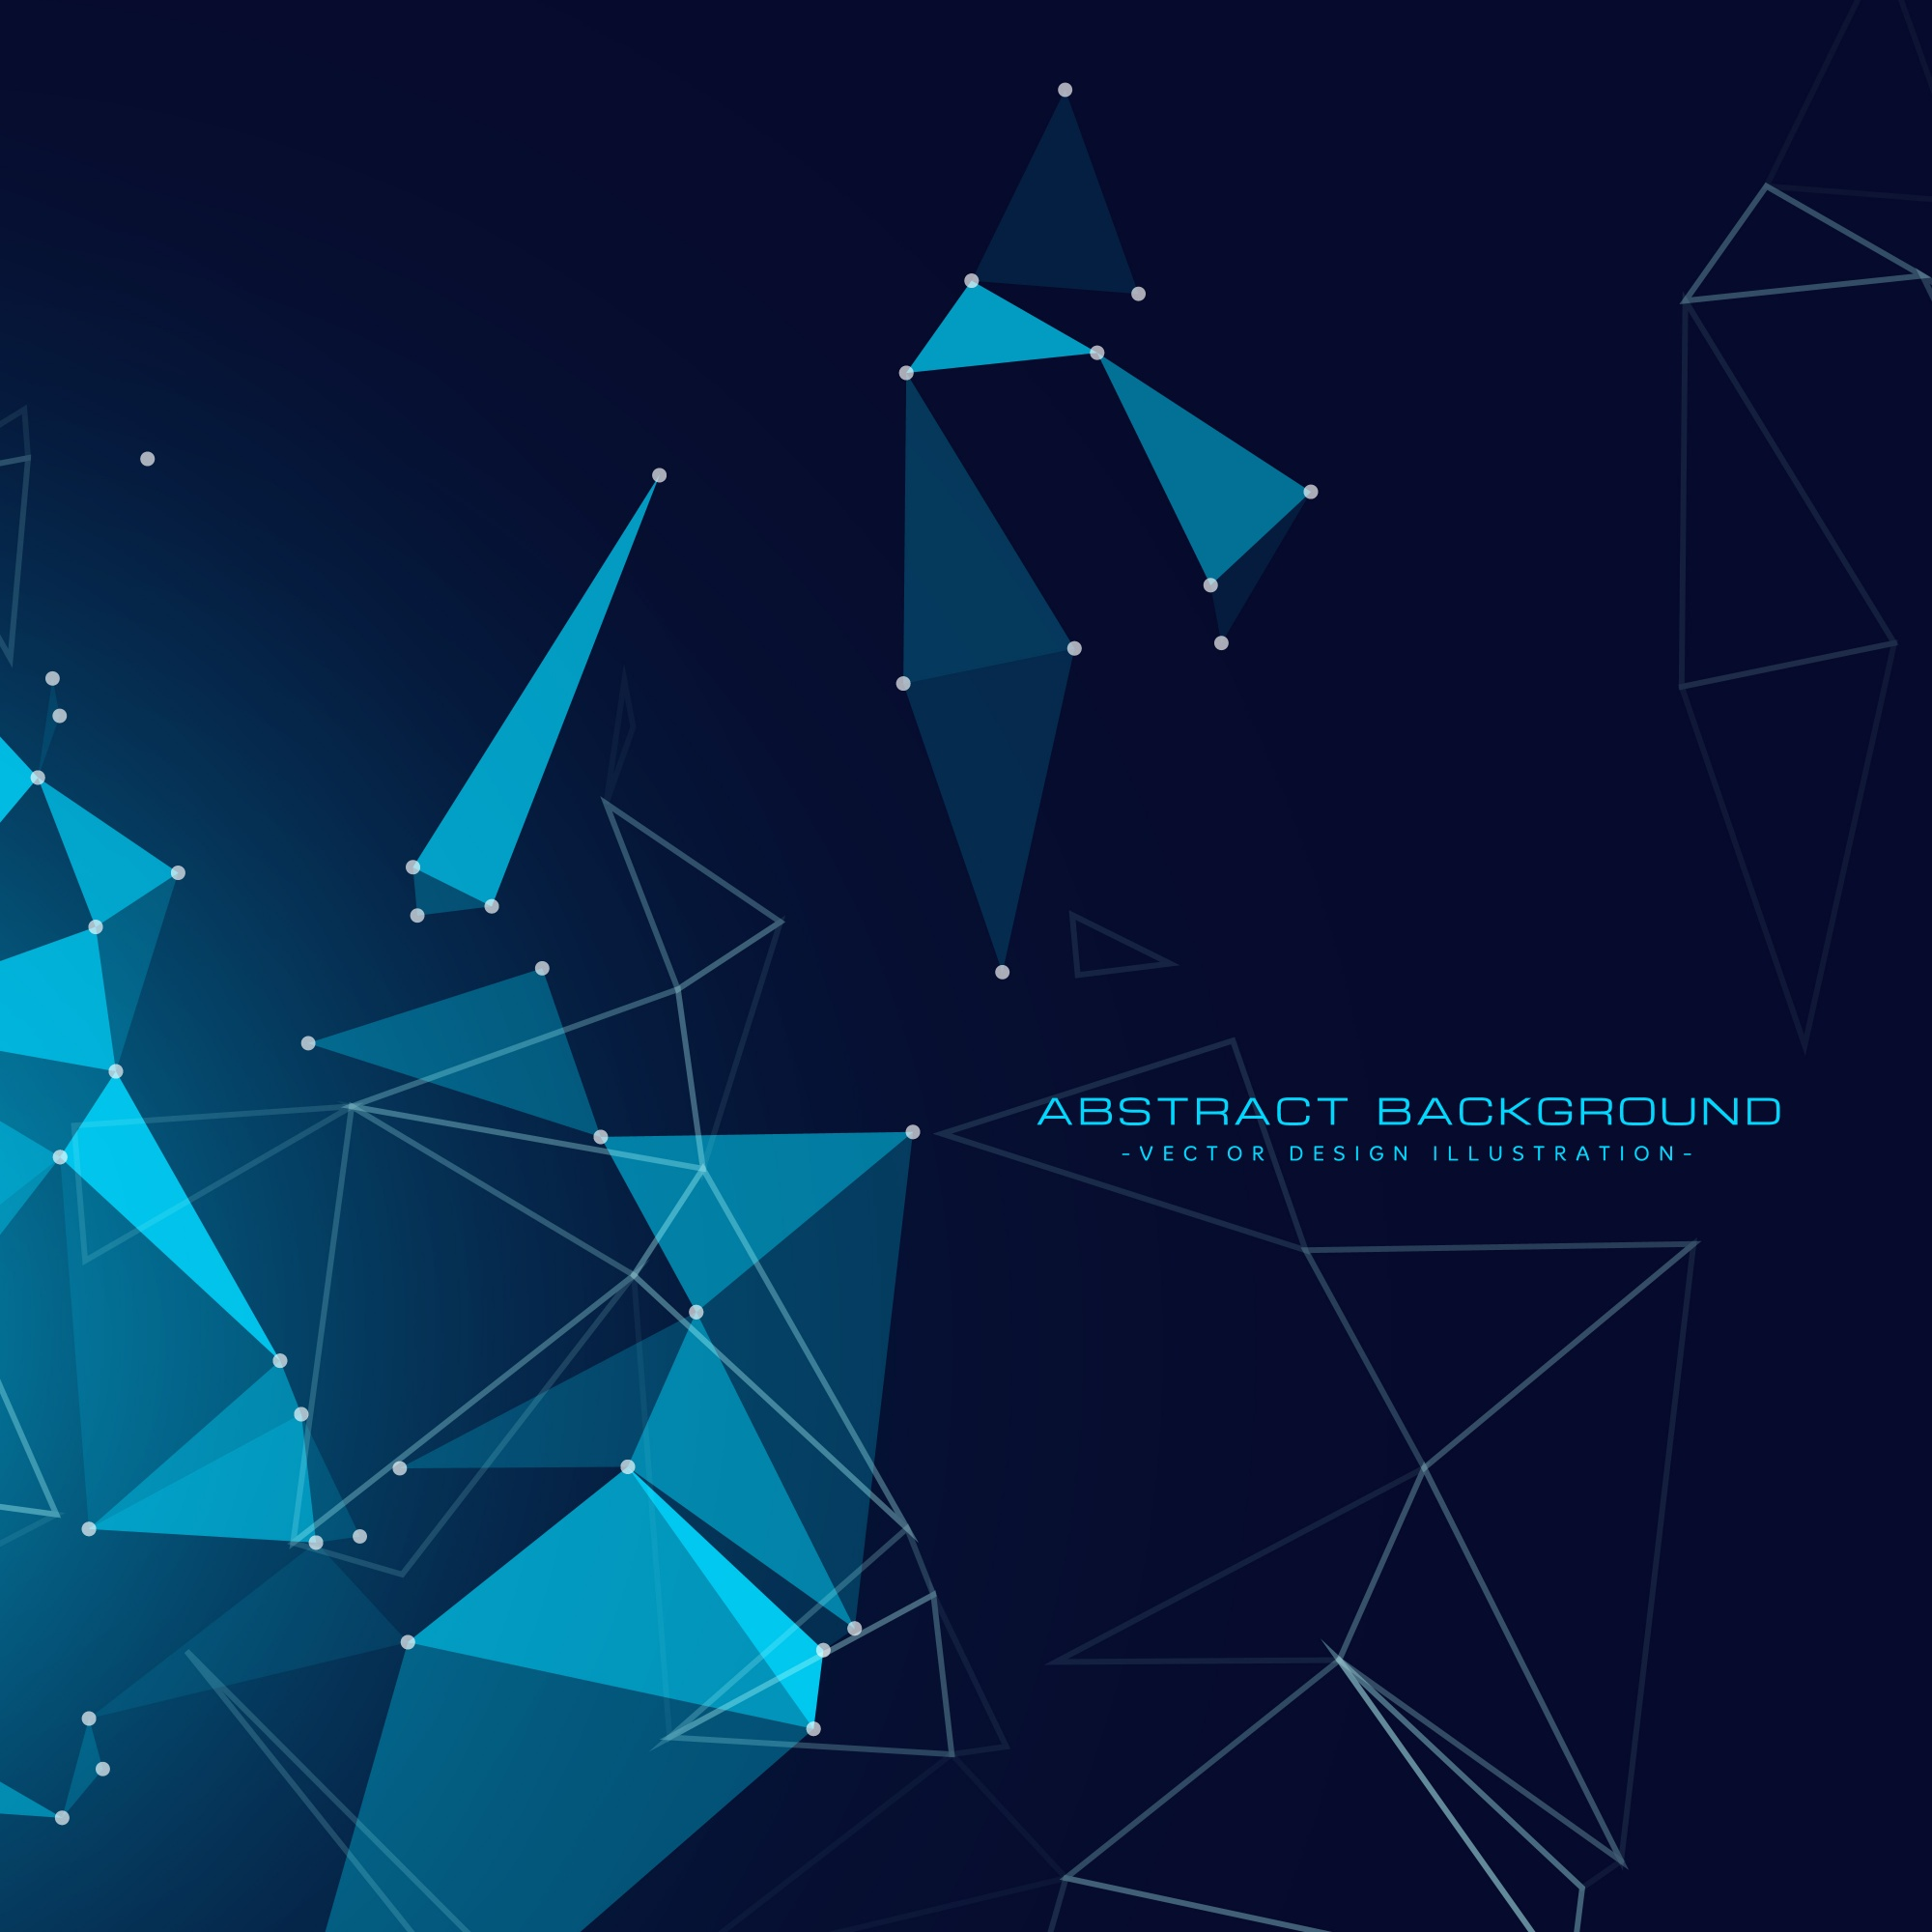 Digital technology background with floating triangles